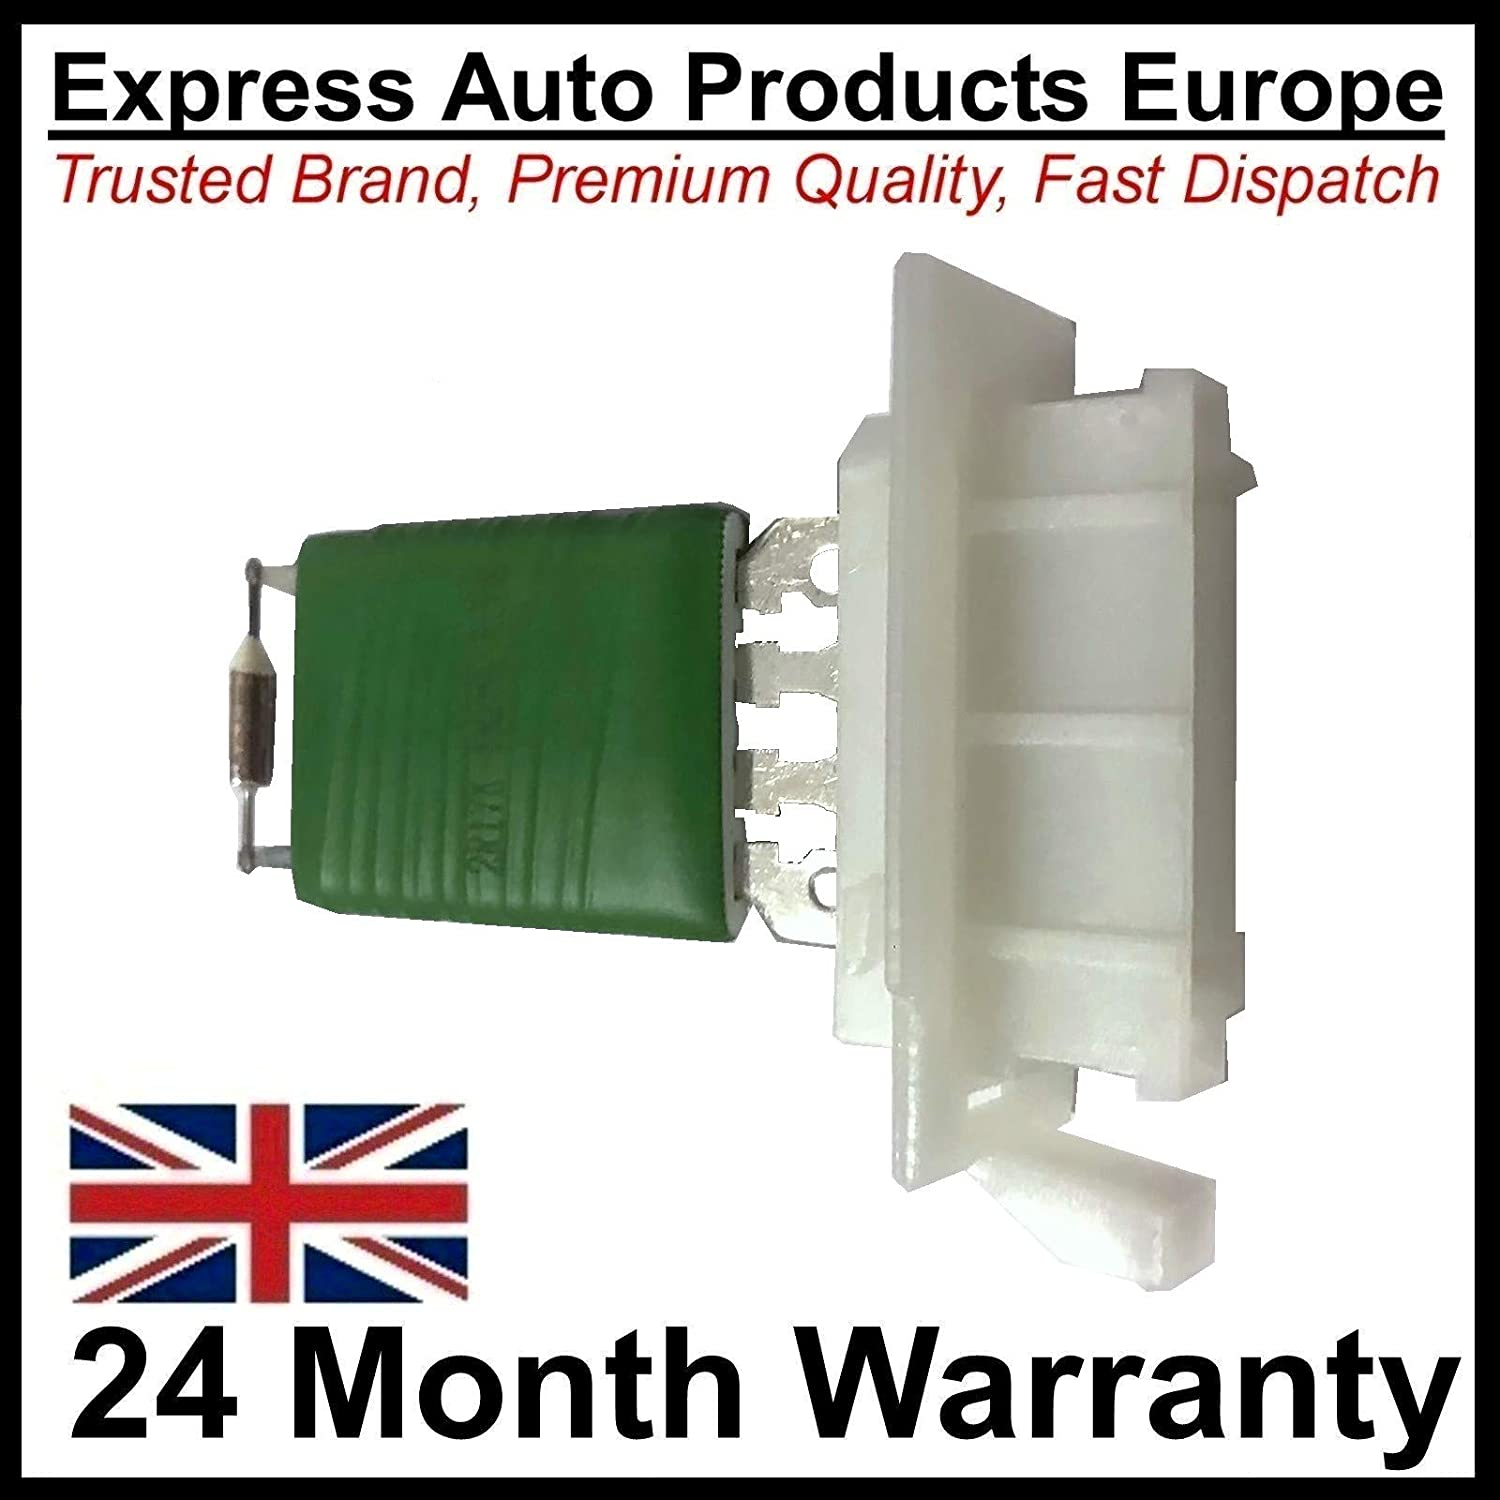 Genuine Mercedes Benz A Class W169 Heater Blower Resister Pack A1698200397 NEW